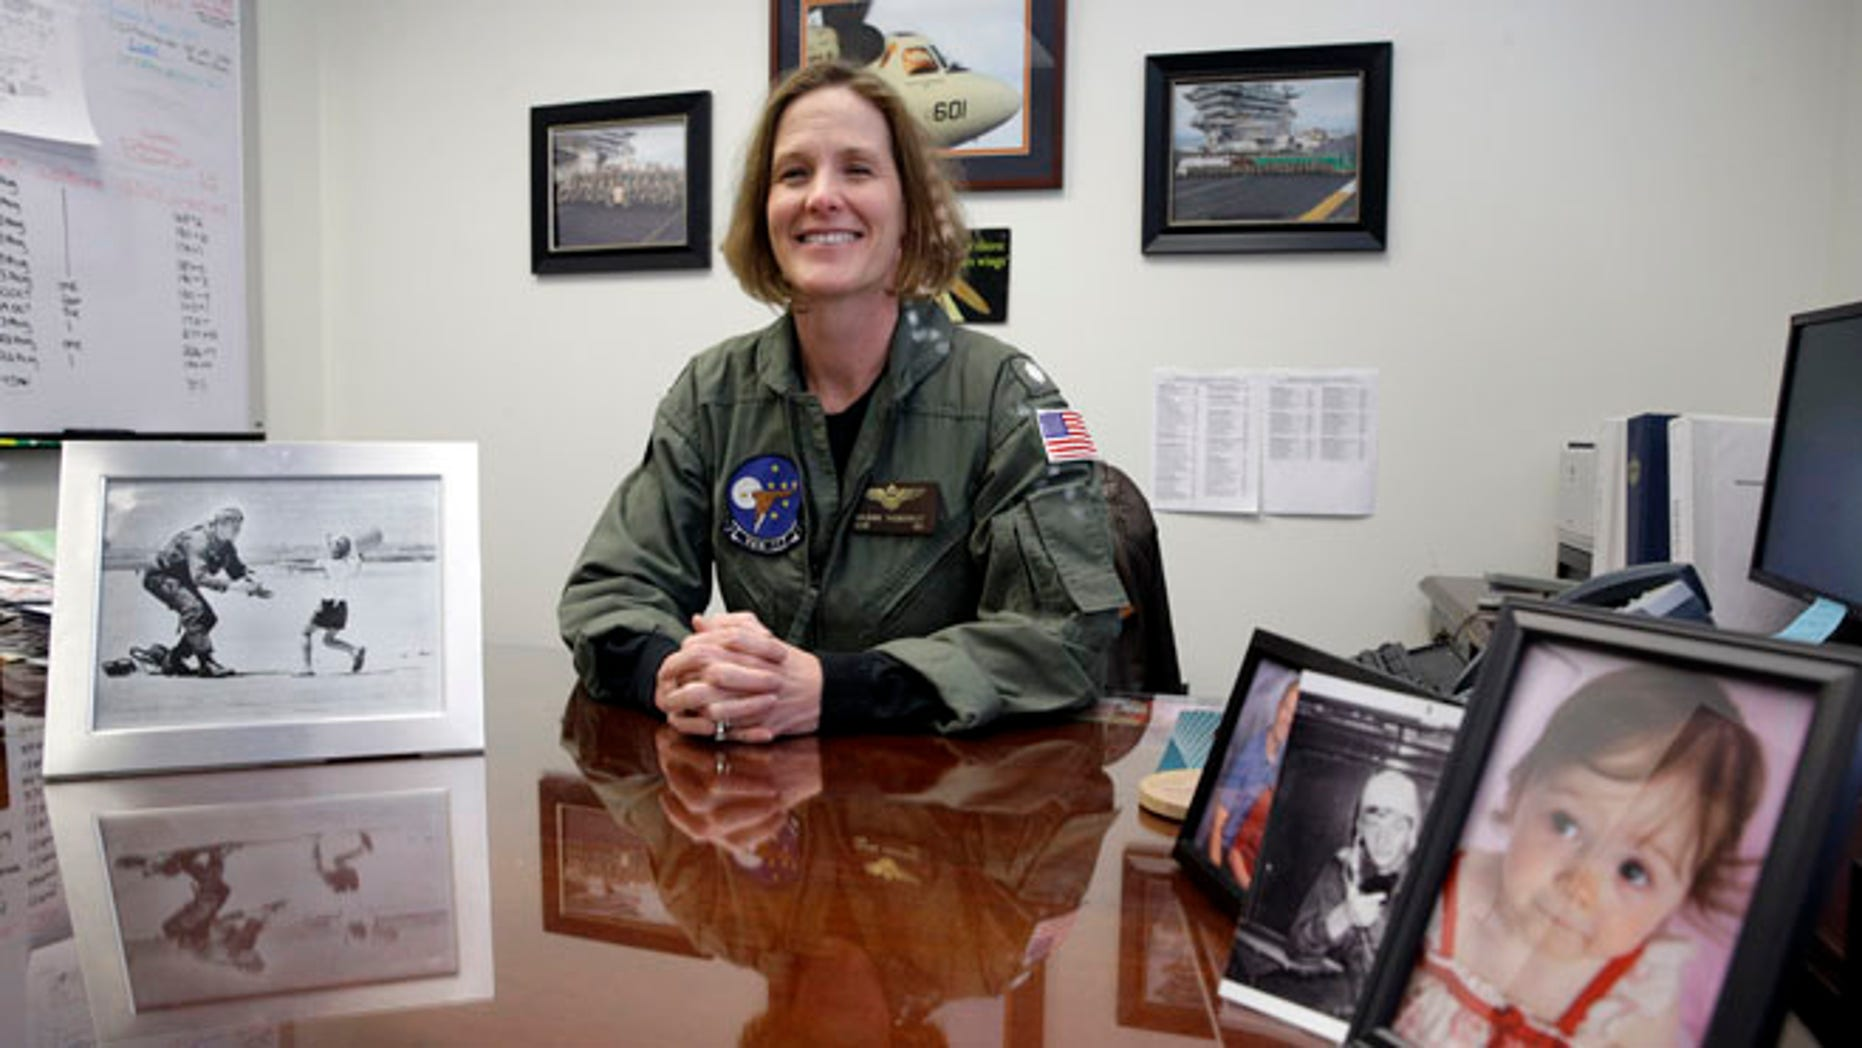 Jan. 9, 2014: This photo shows U.S. Navy Commander Valerie Overstreet poses in her office on the U.S. Naval Academy campus in Annapolis, Md.